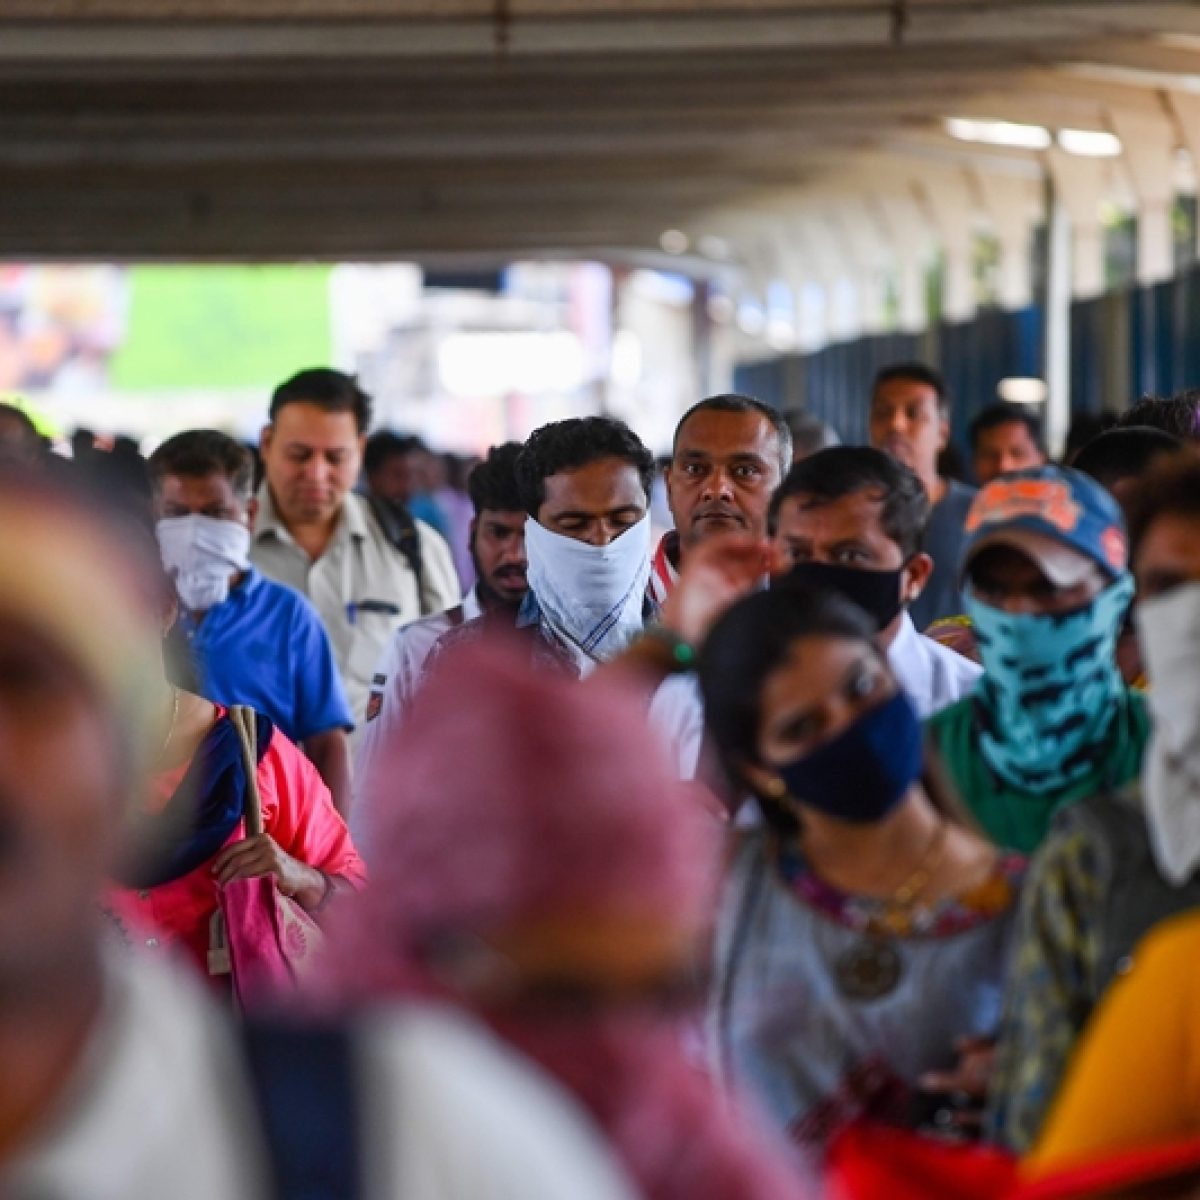 Latest coronavirus update: Over 1,600 persons stuck in Tablighi centre, including 250 foreigners